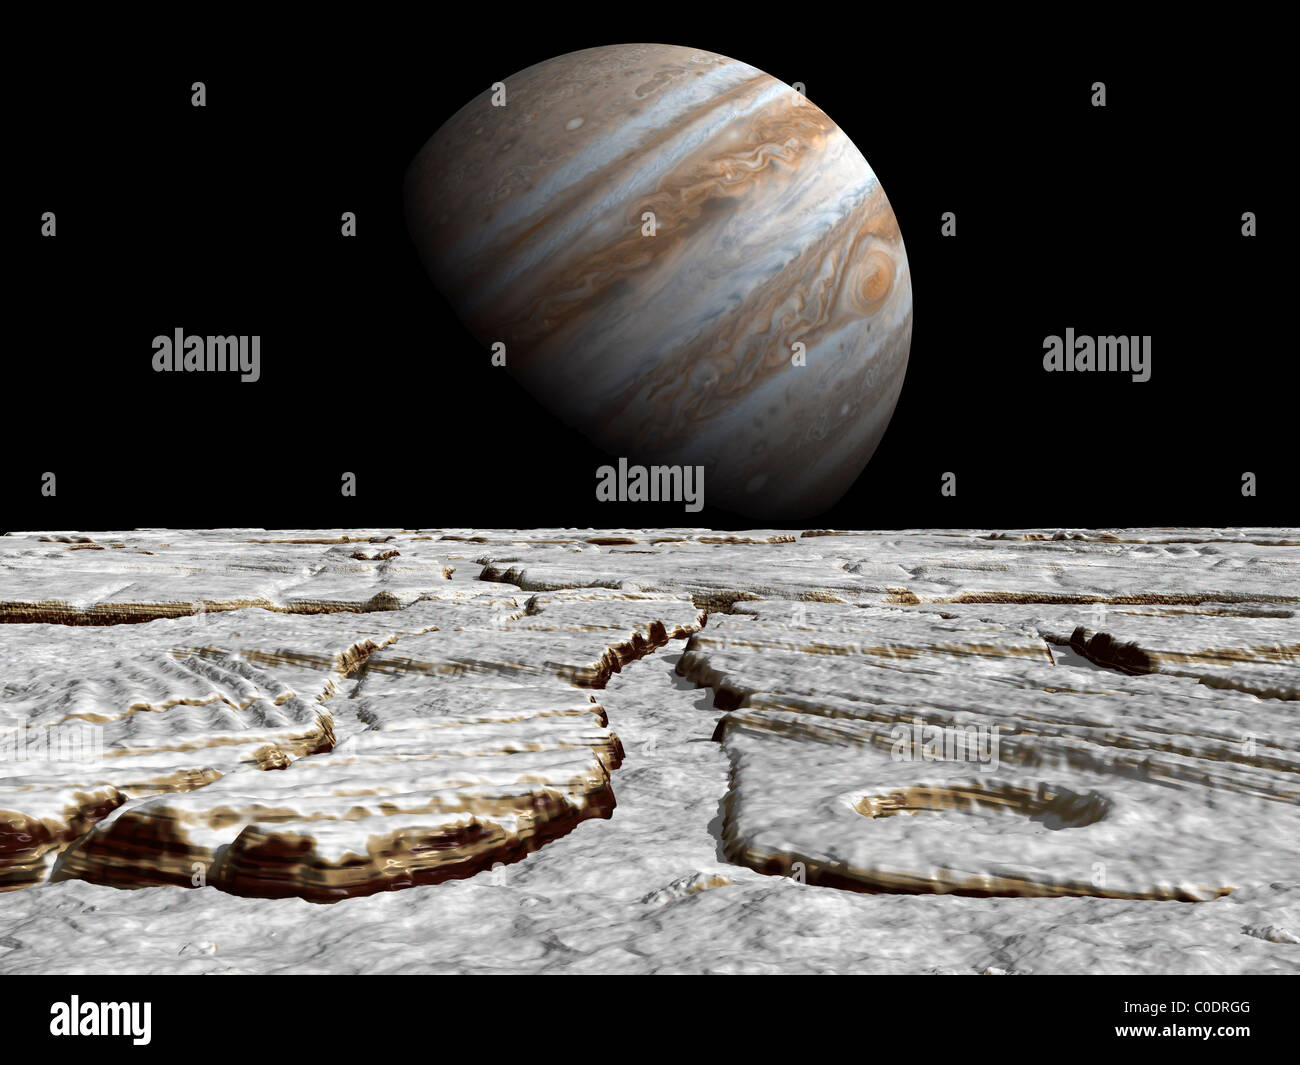 Artist's concept of Jupiter as seen across the icy surface of its moon Europa. - Stock Image